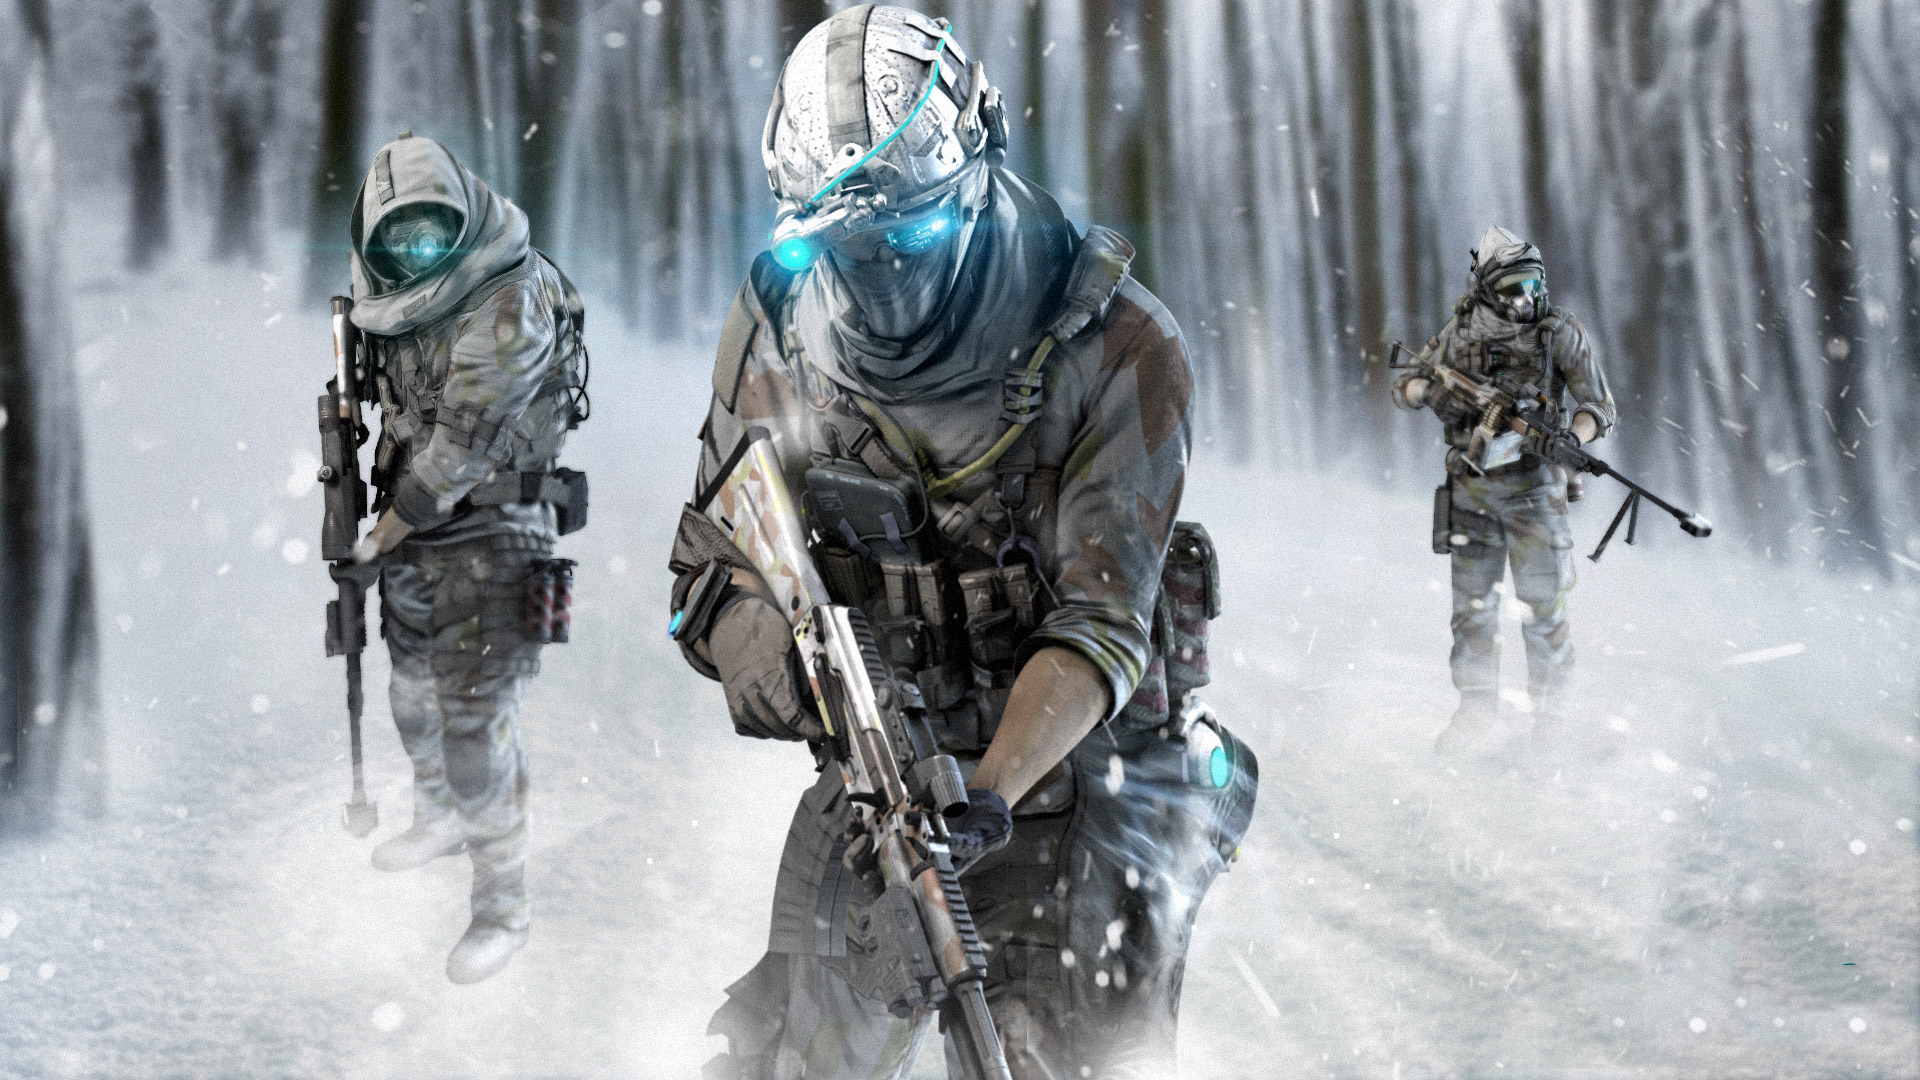 Free Ghost Recon: Phantoms Wallpaper in 1920x1080